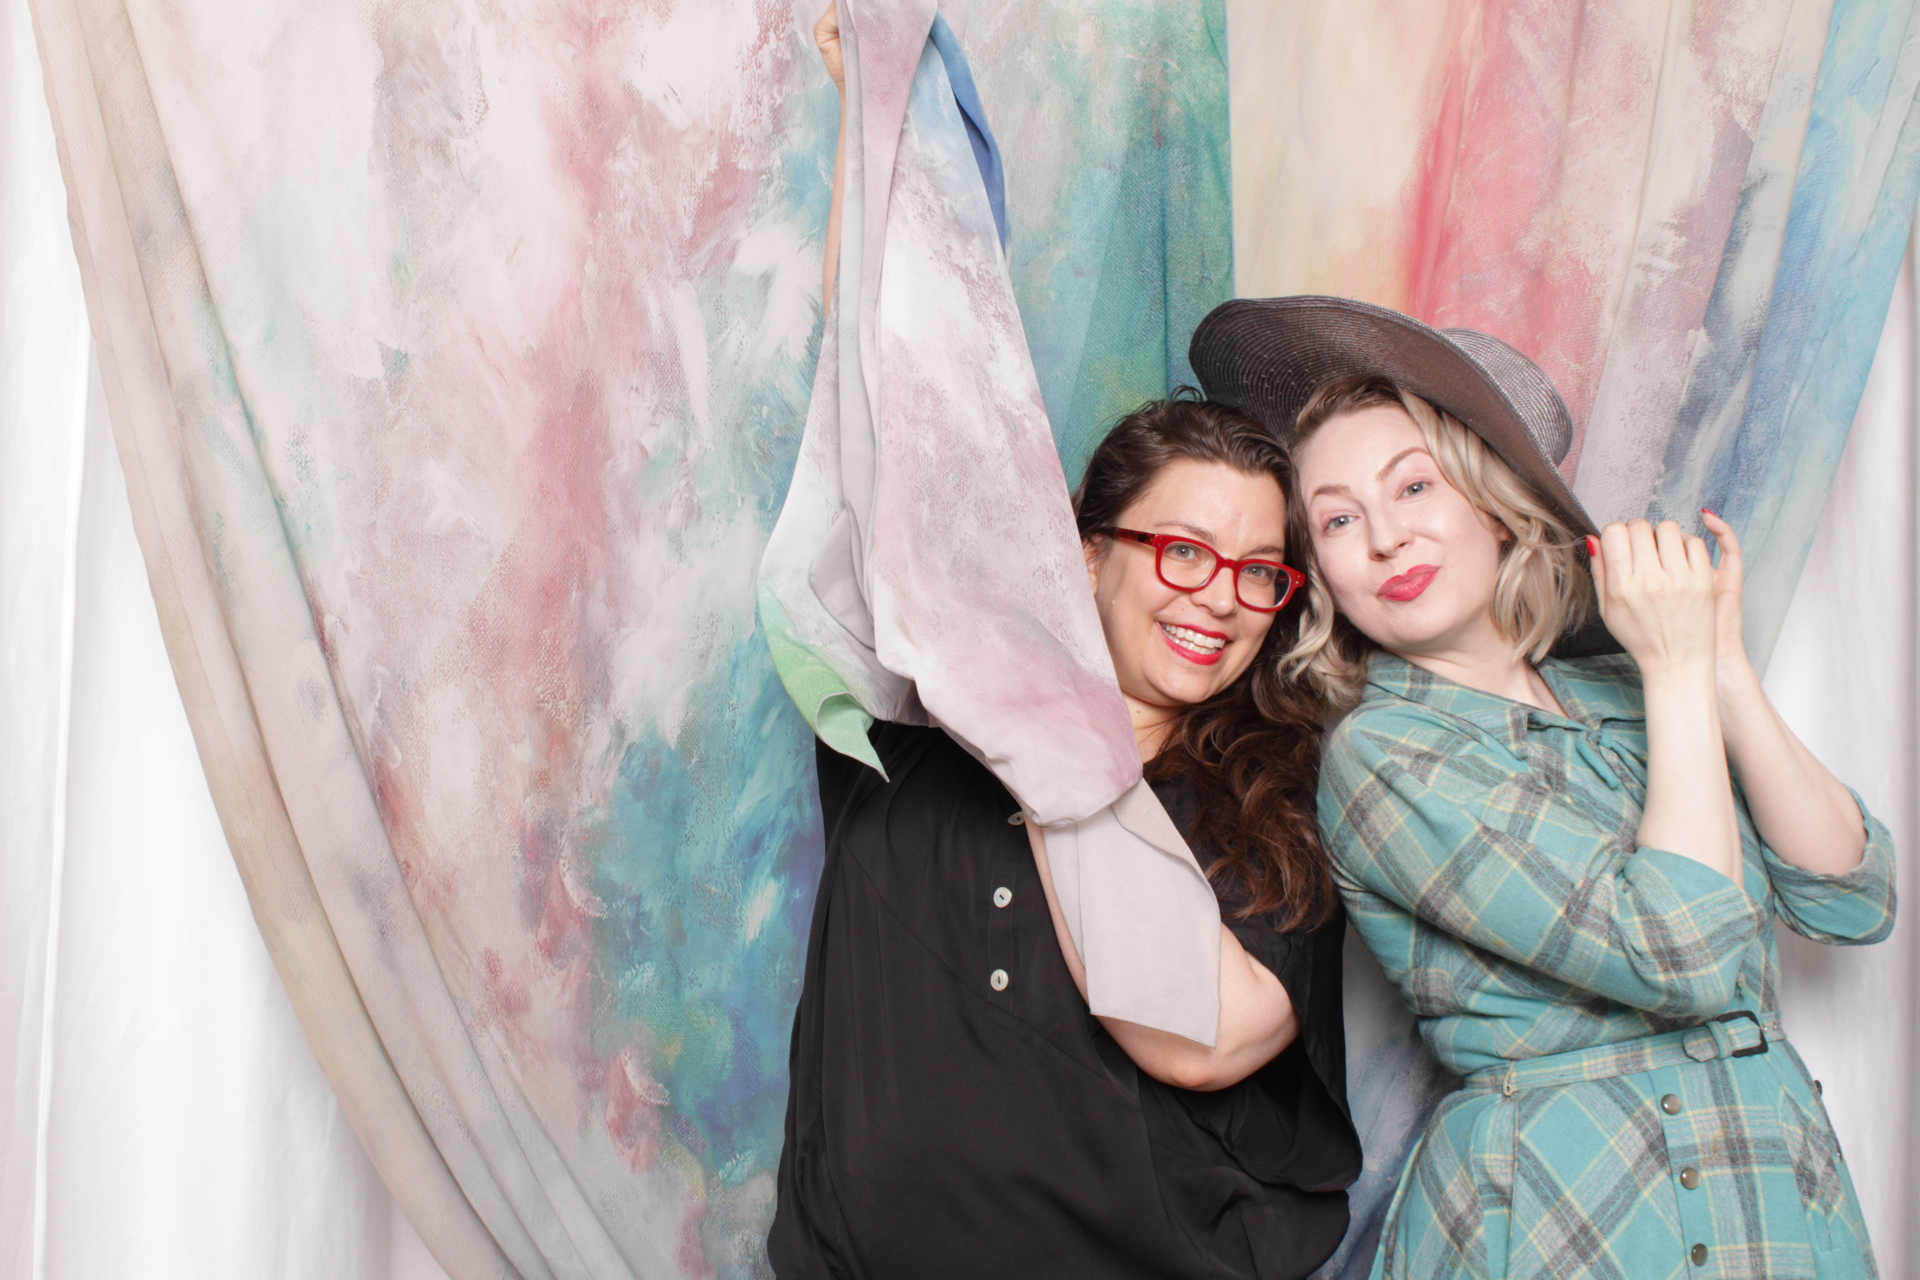 Minneapolis_Photo_Booth_party_rentals (3).jpg